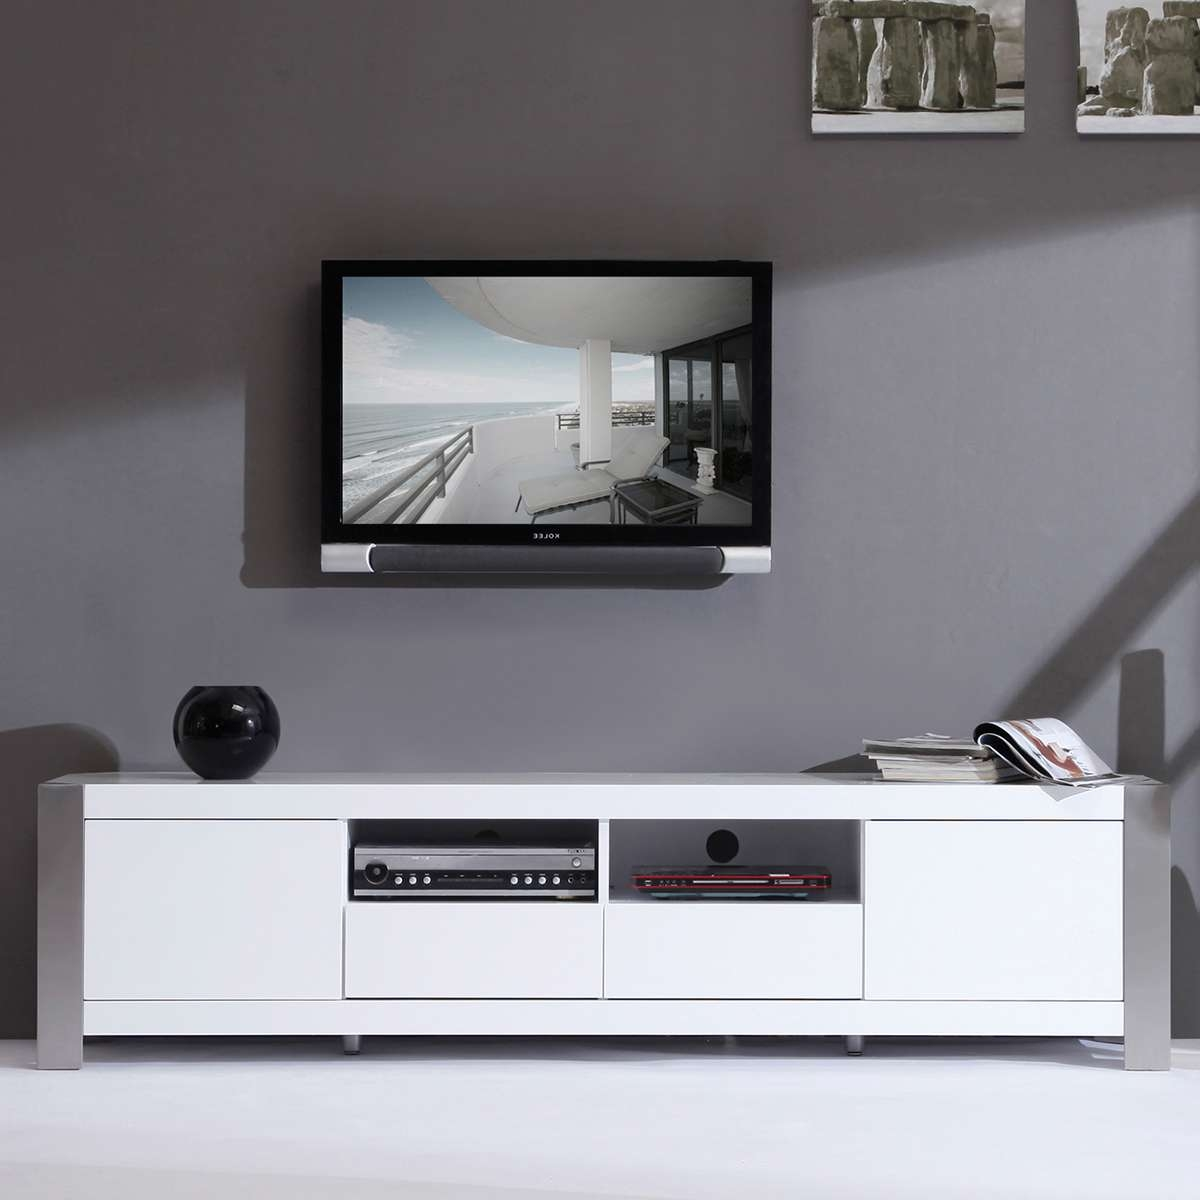 Tv : Roma Black Swivel High Gloss Tv Stand Modern Tv Stands With Regard To Large White Tv Stands (View 3 of 15)